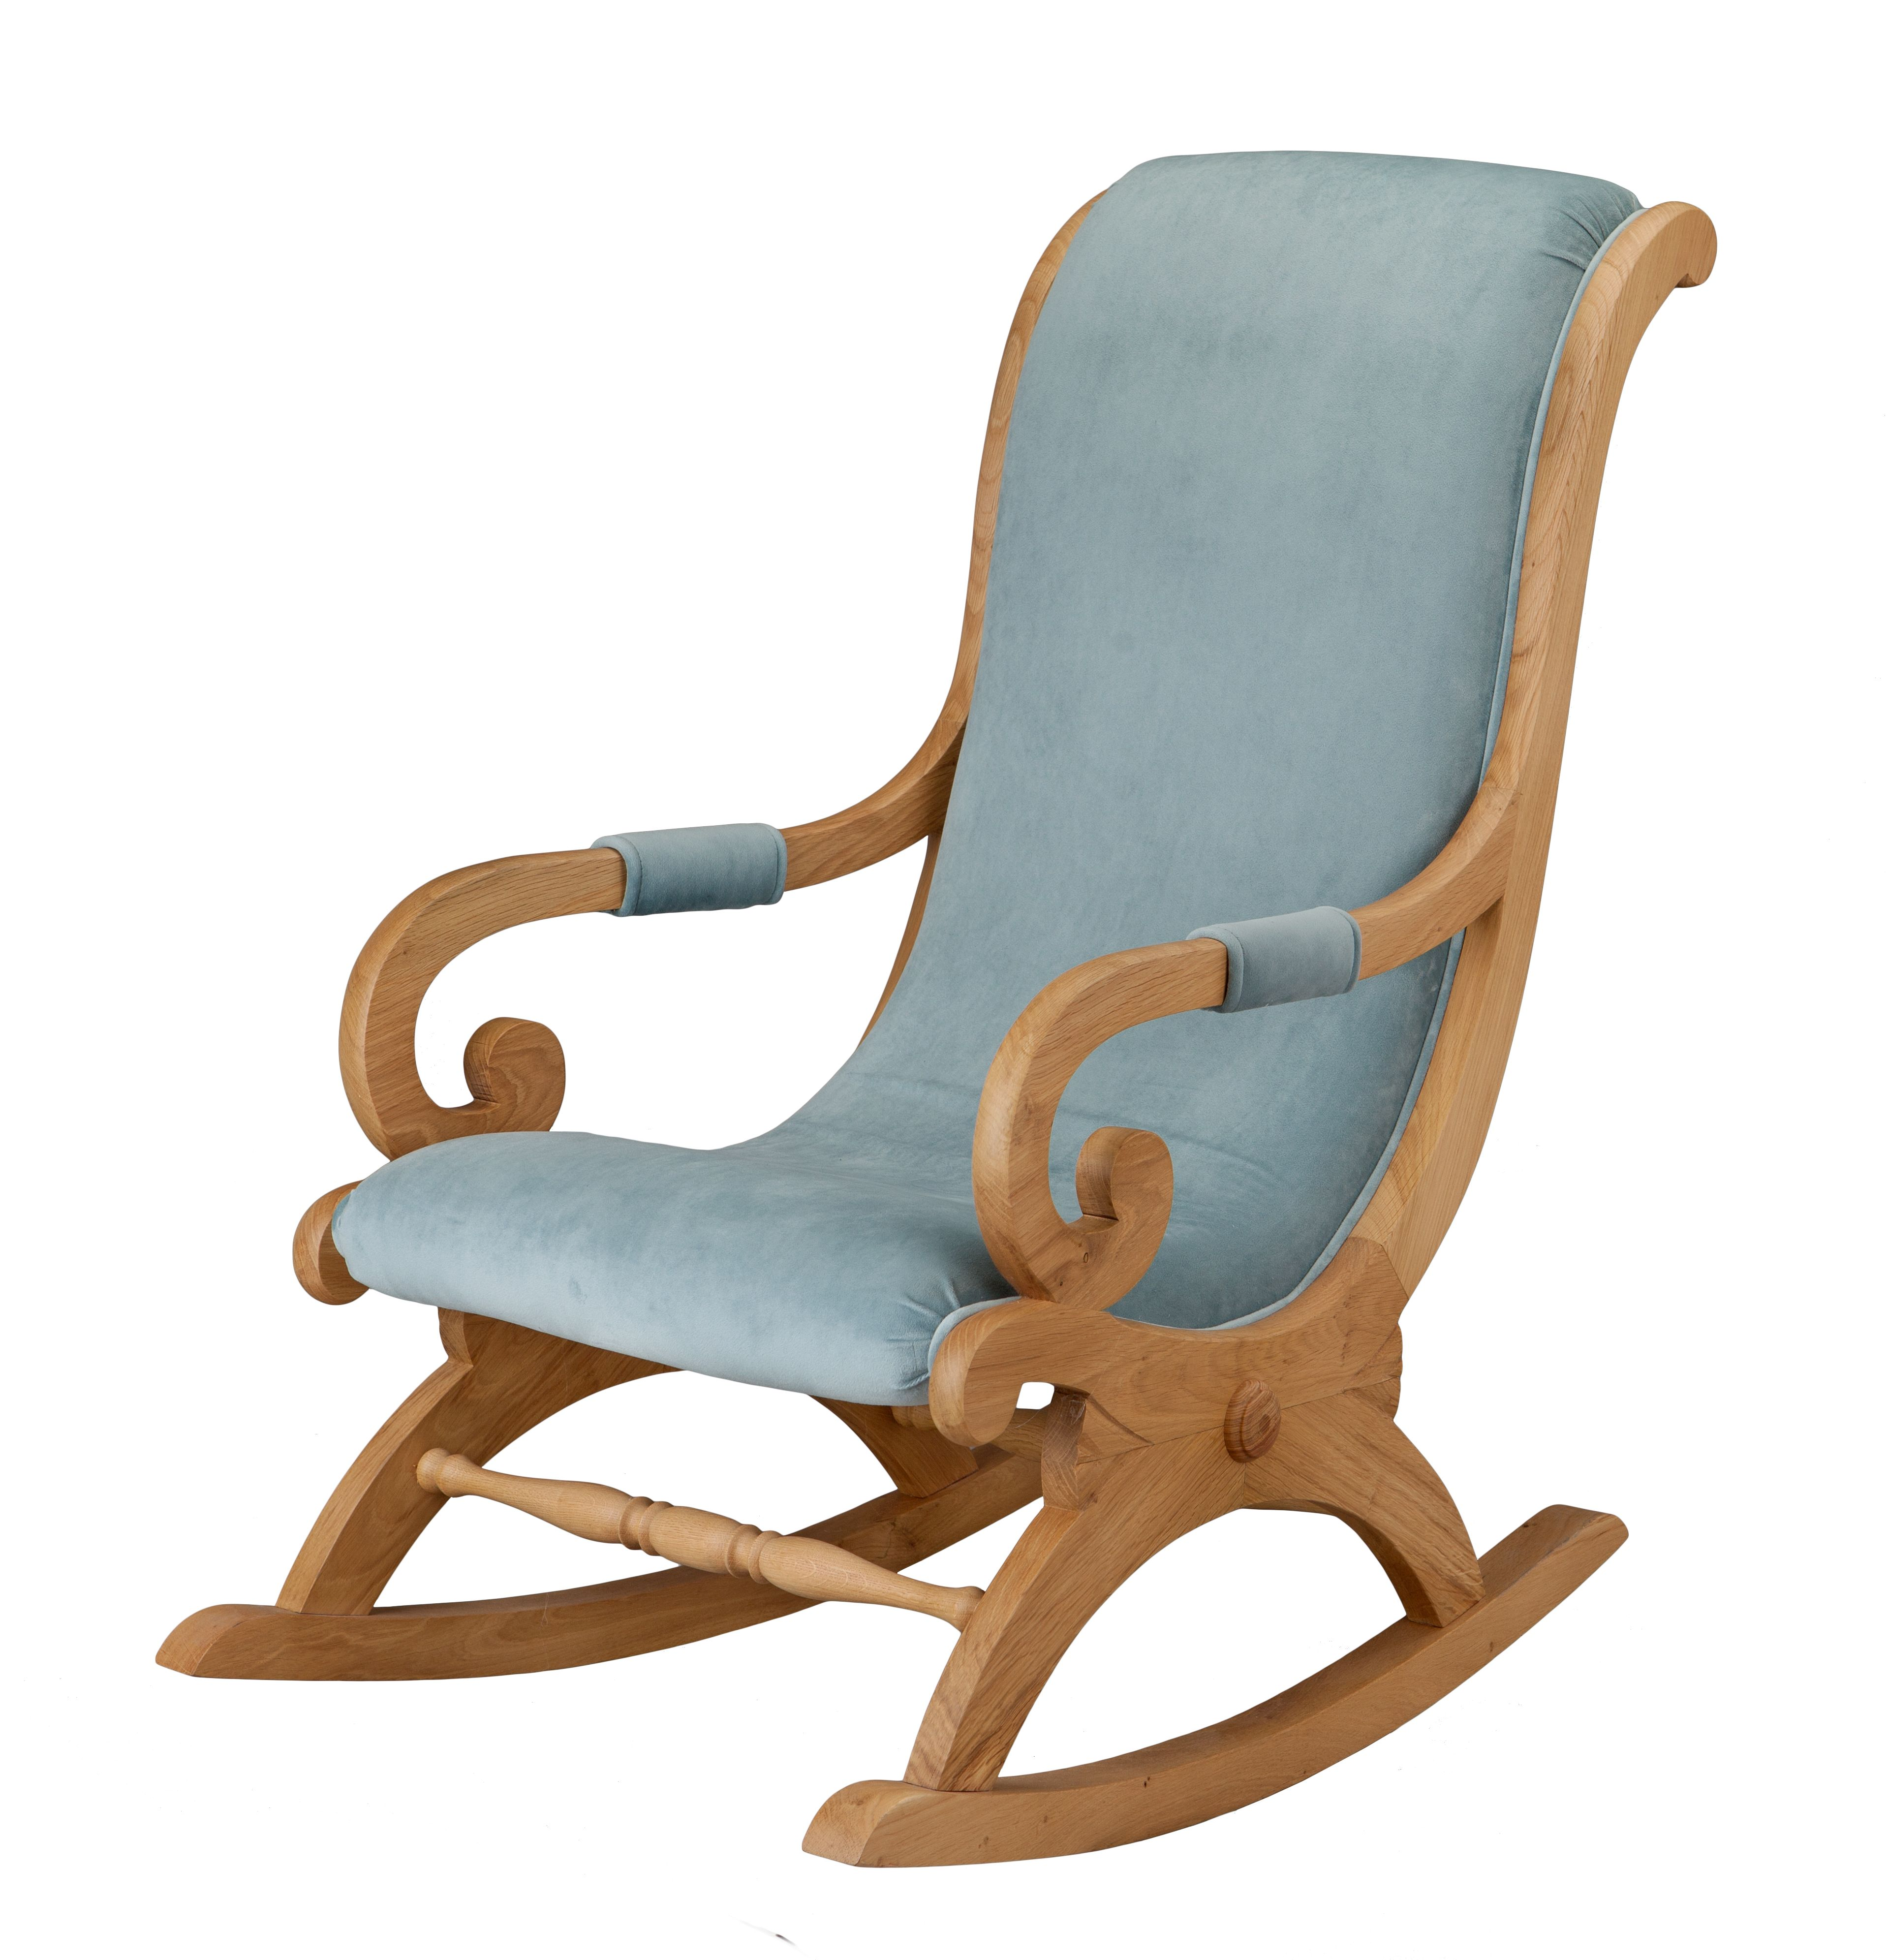 discount rocking chairs high babies r us buy cheap nursery chair compare products prices